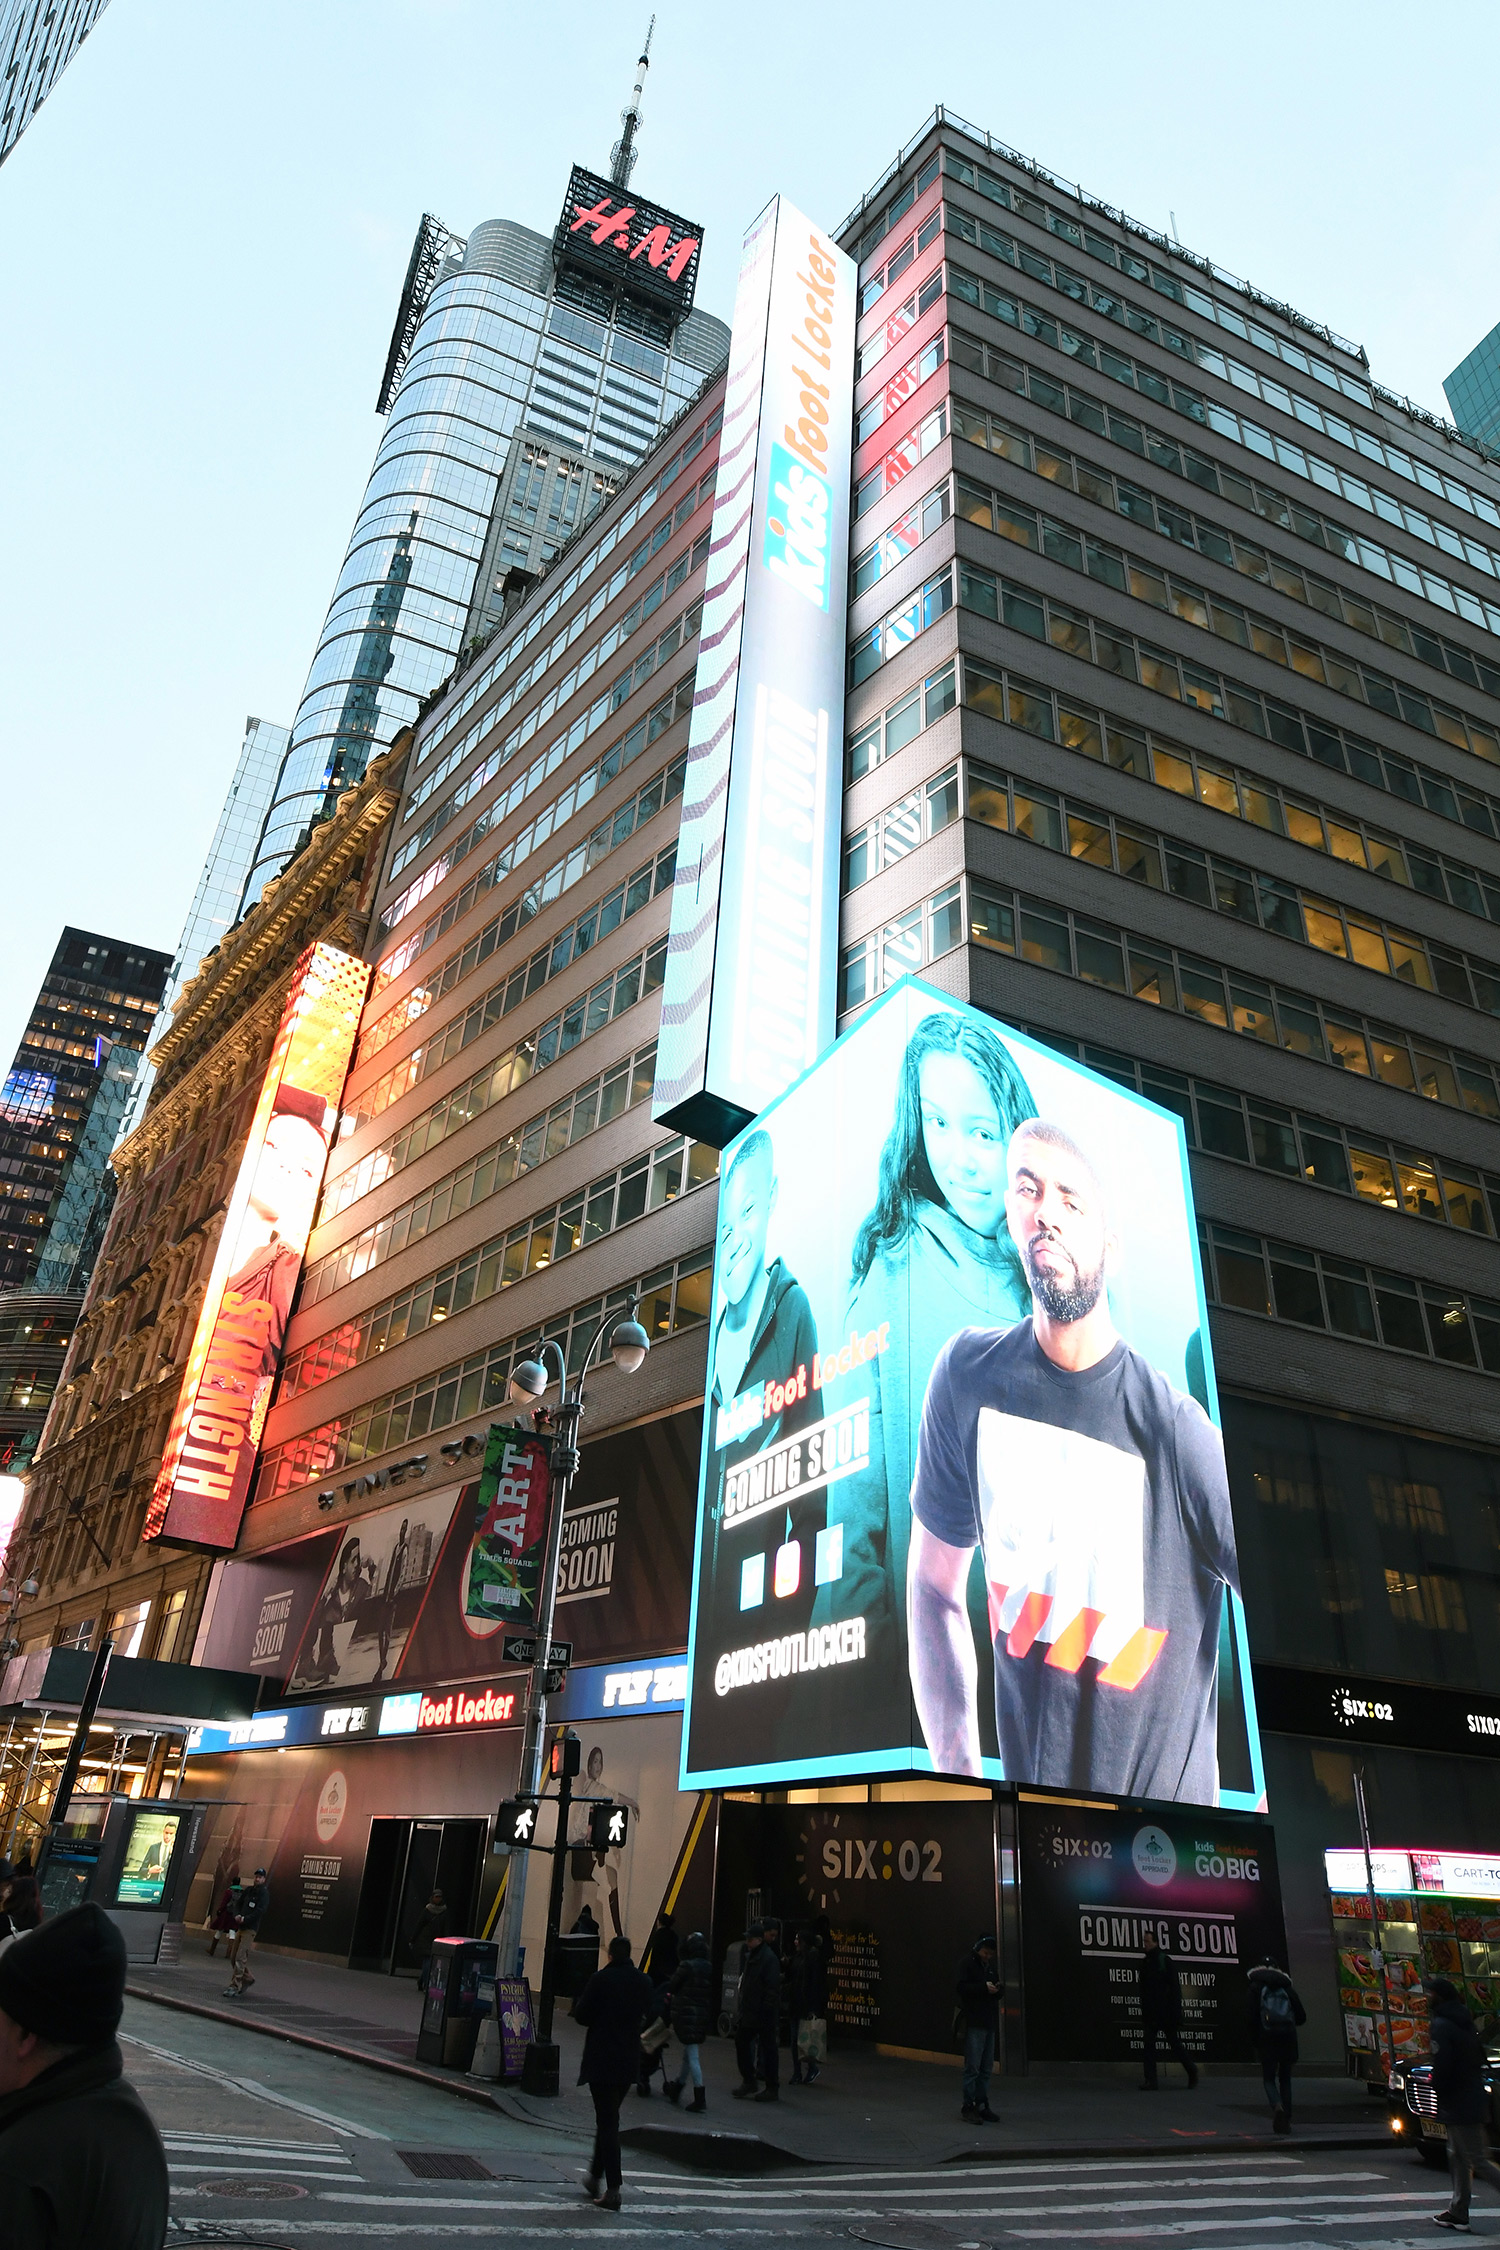 Outside of Times Square Foot Locker